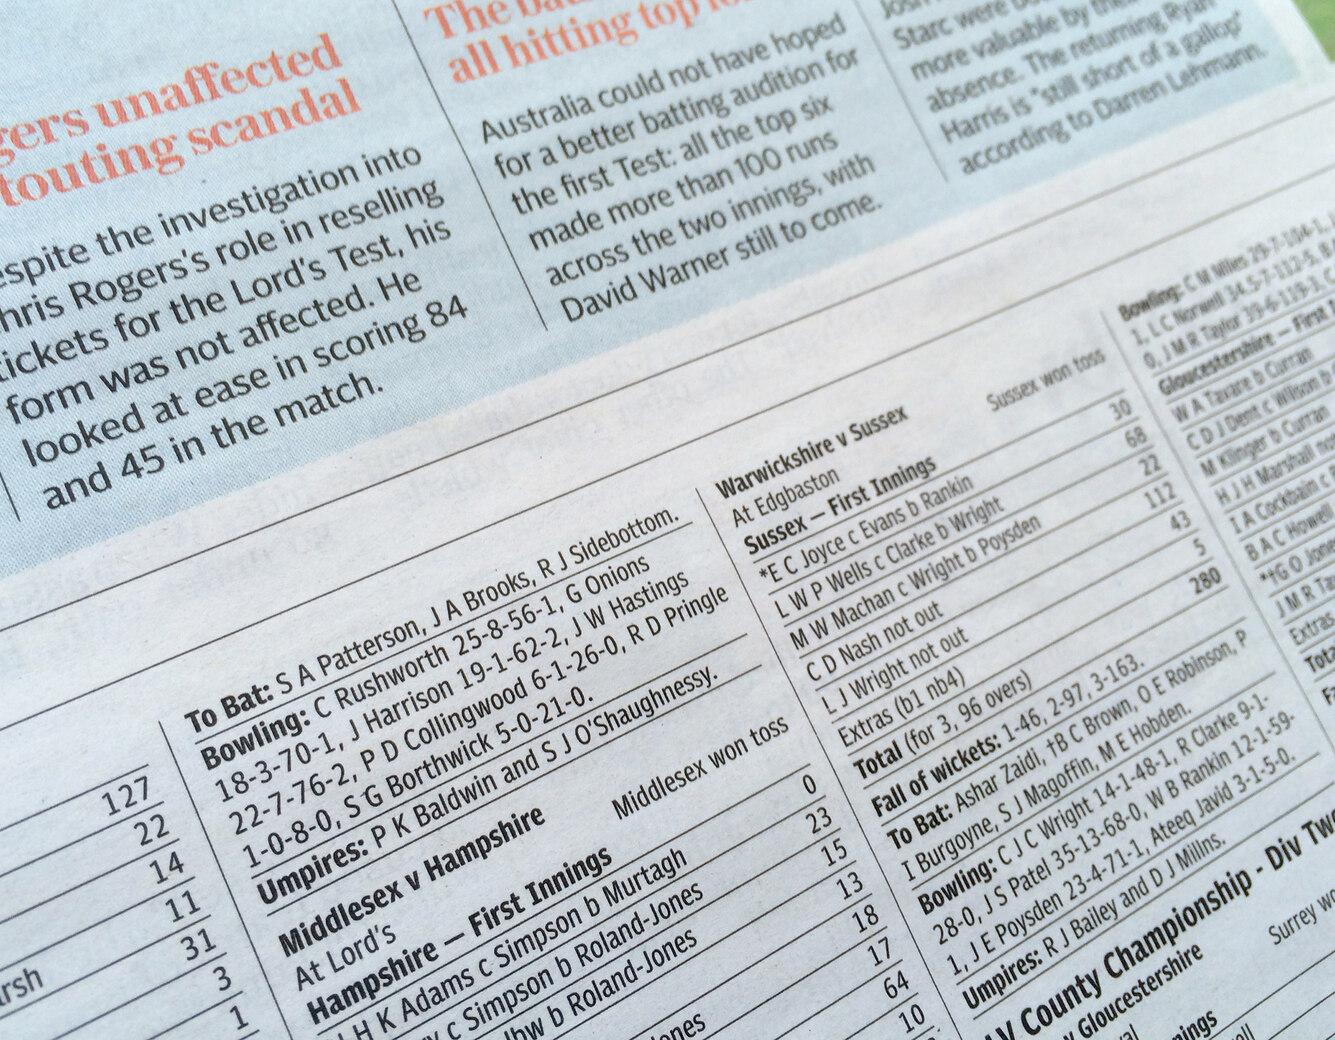 Linotype Corona - latest British newspaper typeface makes British debut in leading Liverpool dailies.